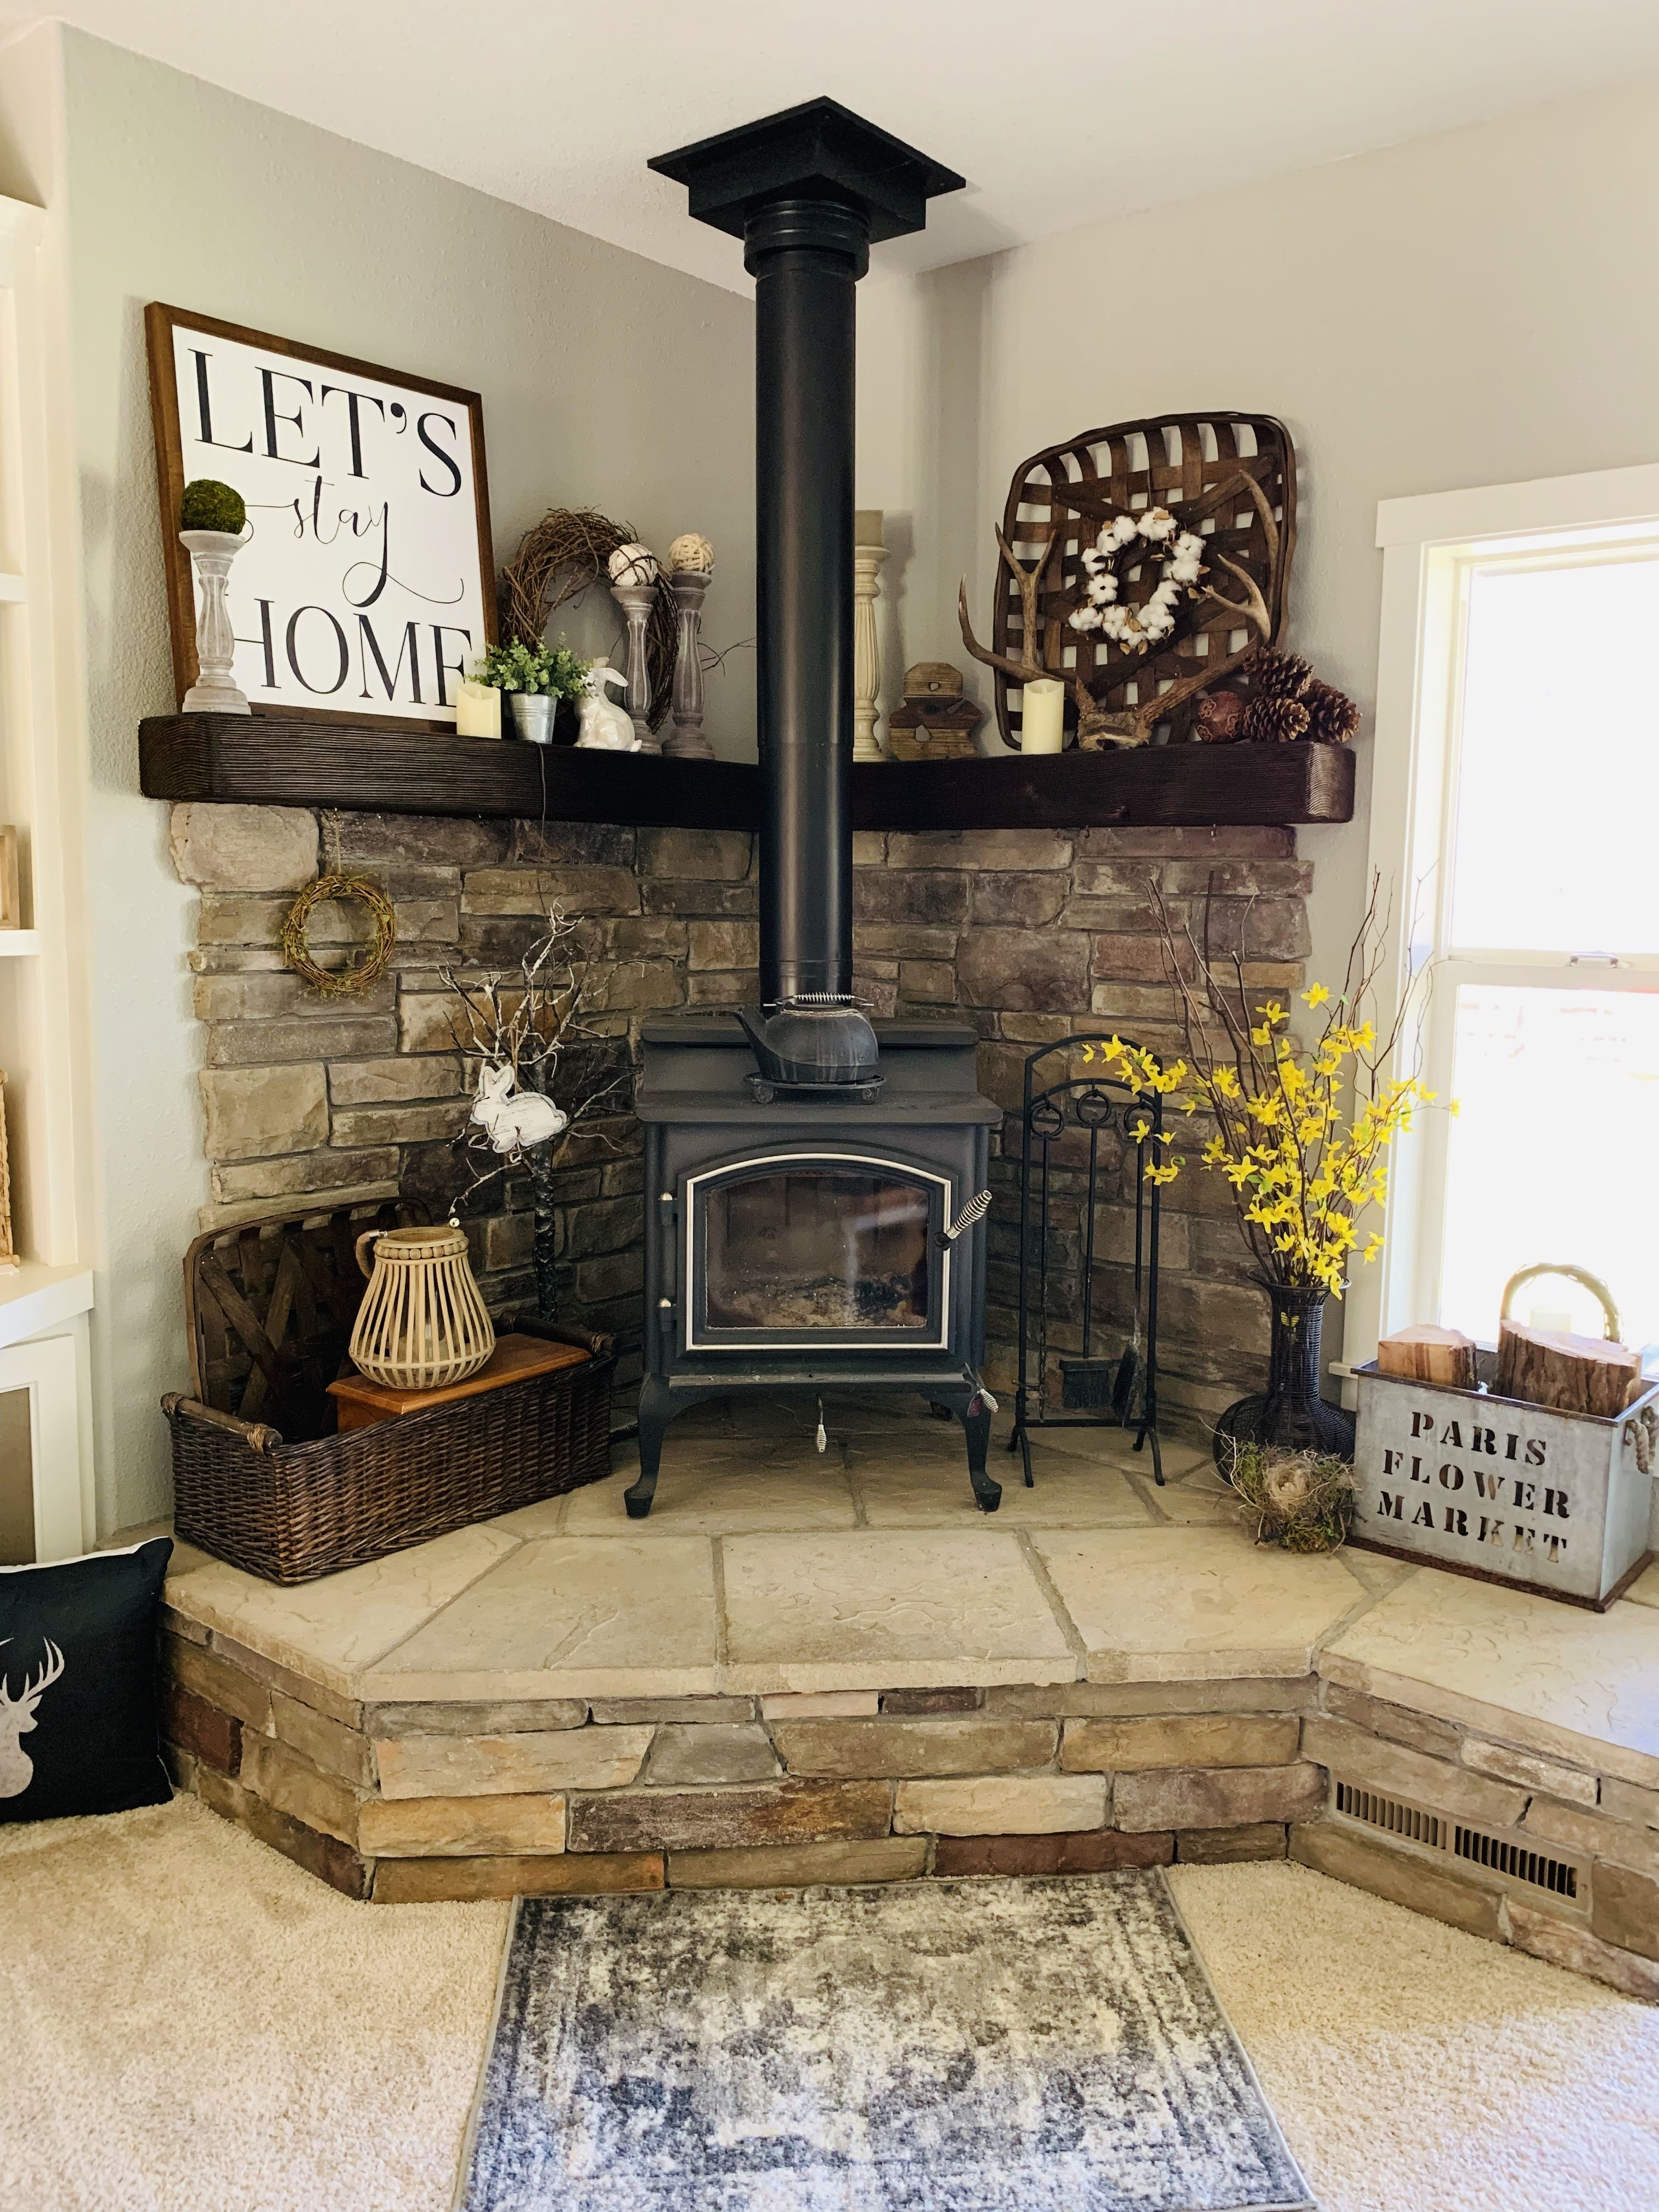 Pin By Sherry Bleer On House Wood Stove Decor Corner Wood Stove Stove Decor